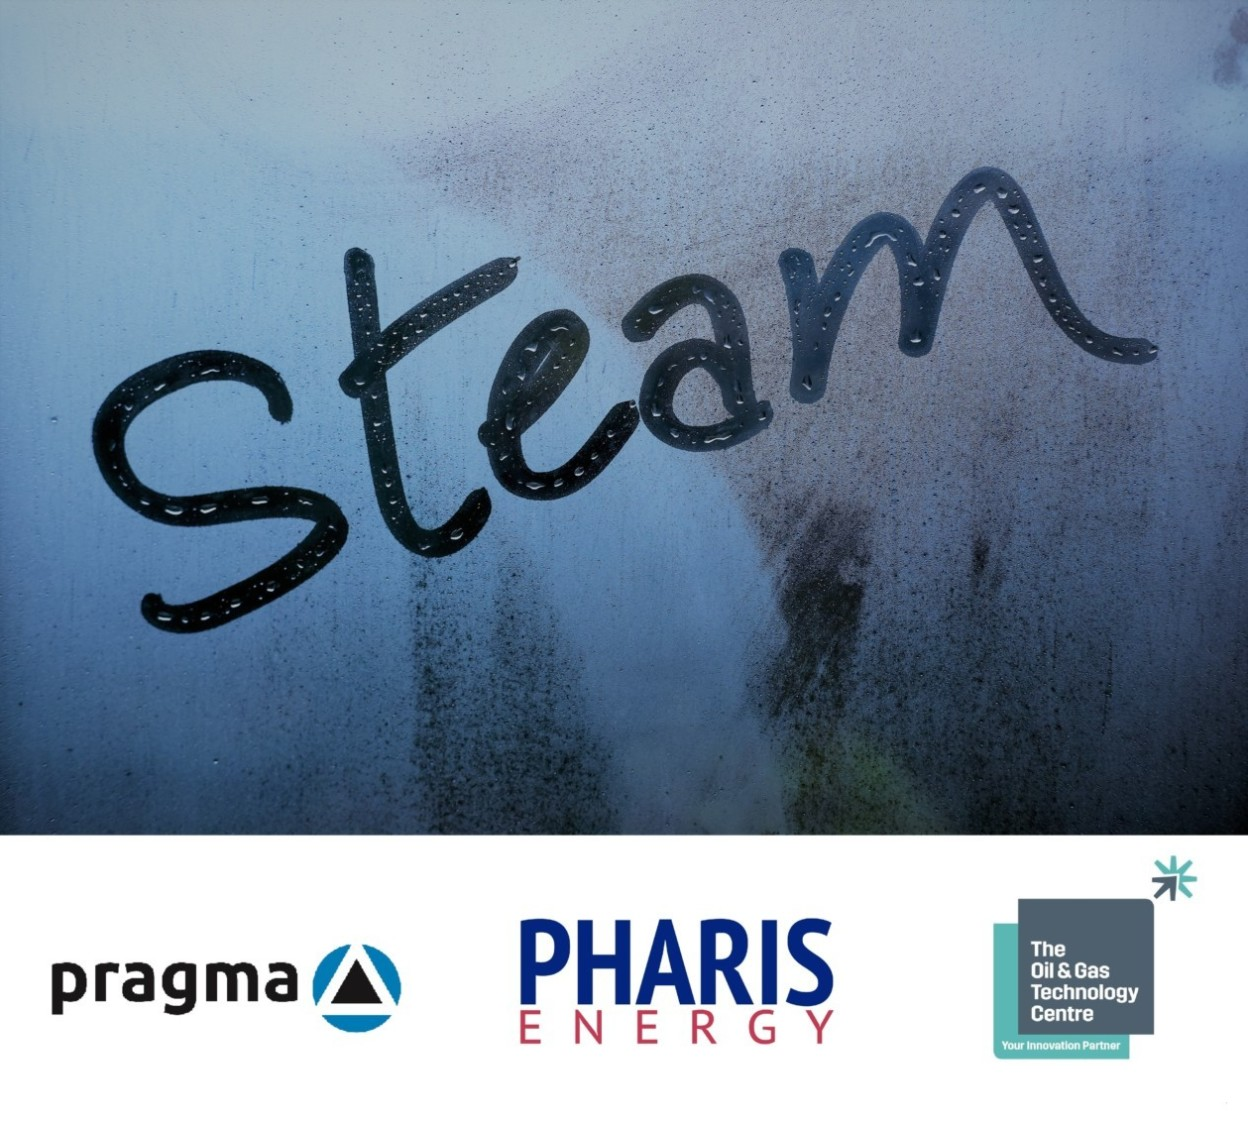 Pragma and Pharis Energy to Develop a Downhole Steam Injection Valve with Support from OGTC